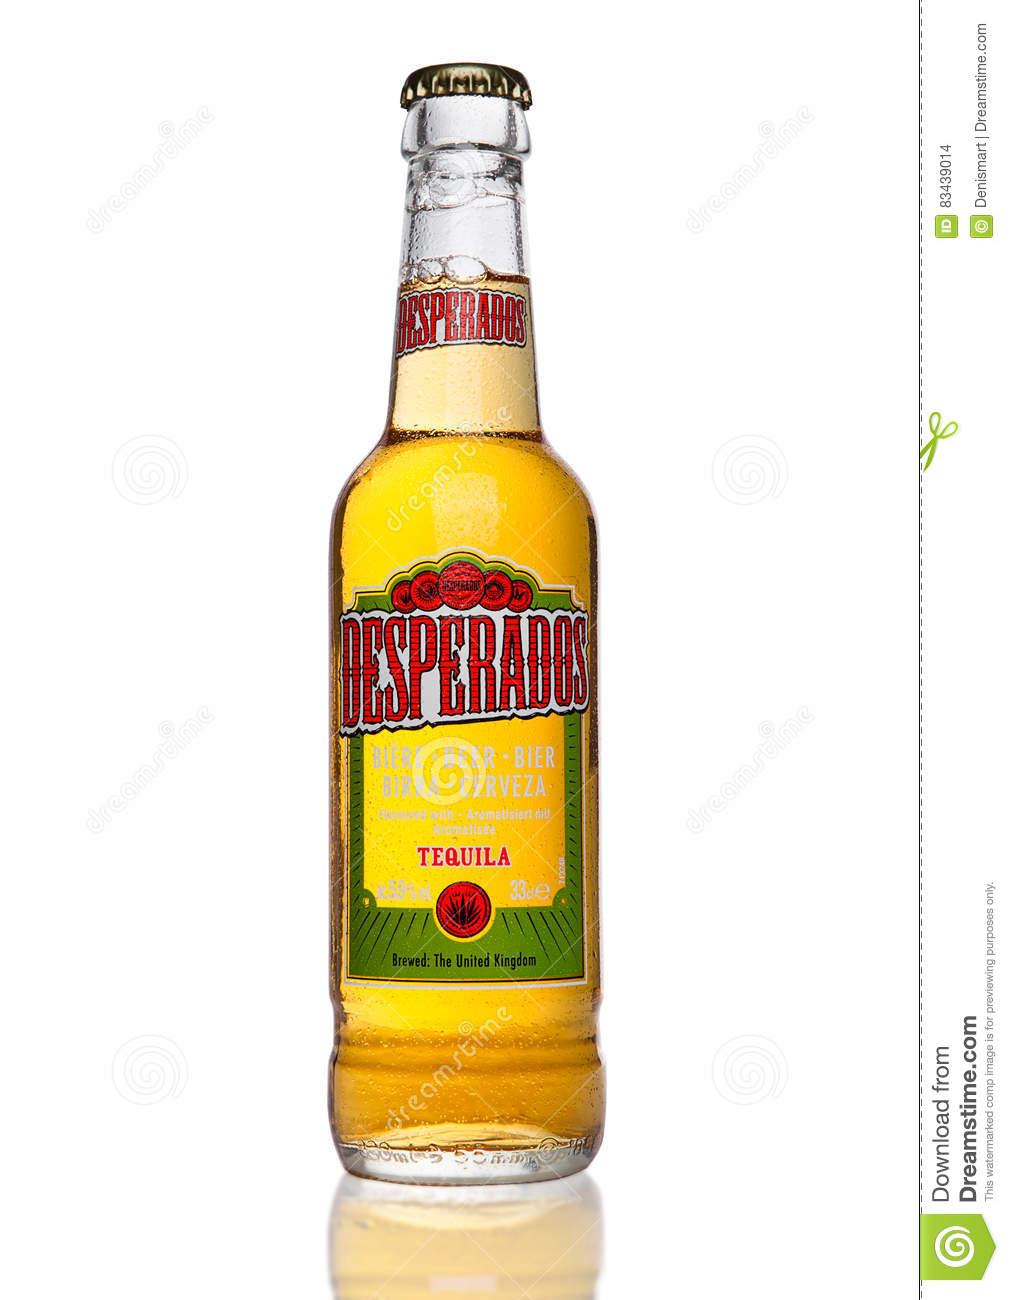 1 905 Beer Tequila Photos Free Royalty Free Stock Photos From Dreamstime